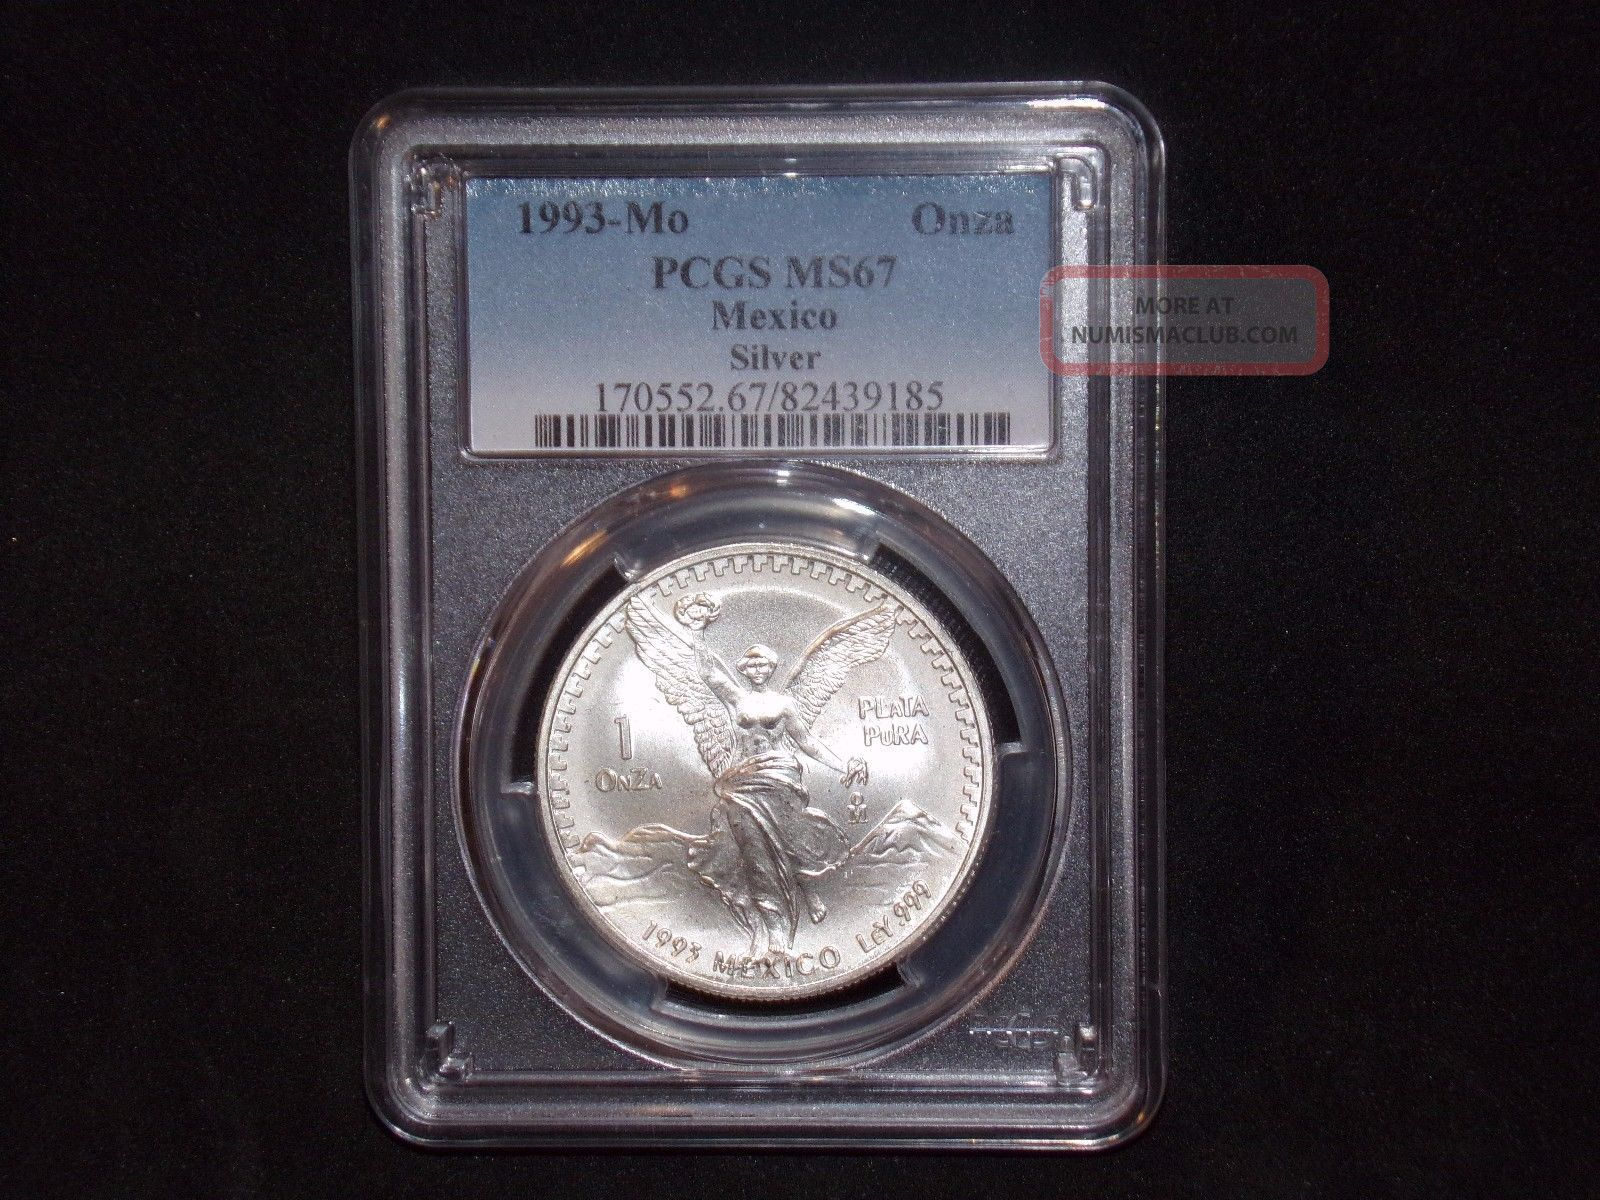 1993 - Mo Pcgs Ms67 1 Onza.  999 Silver Libertad Pop 29 Blast White Mexico photo